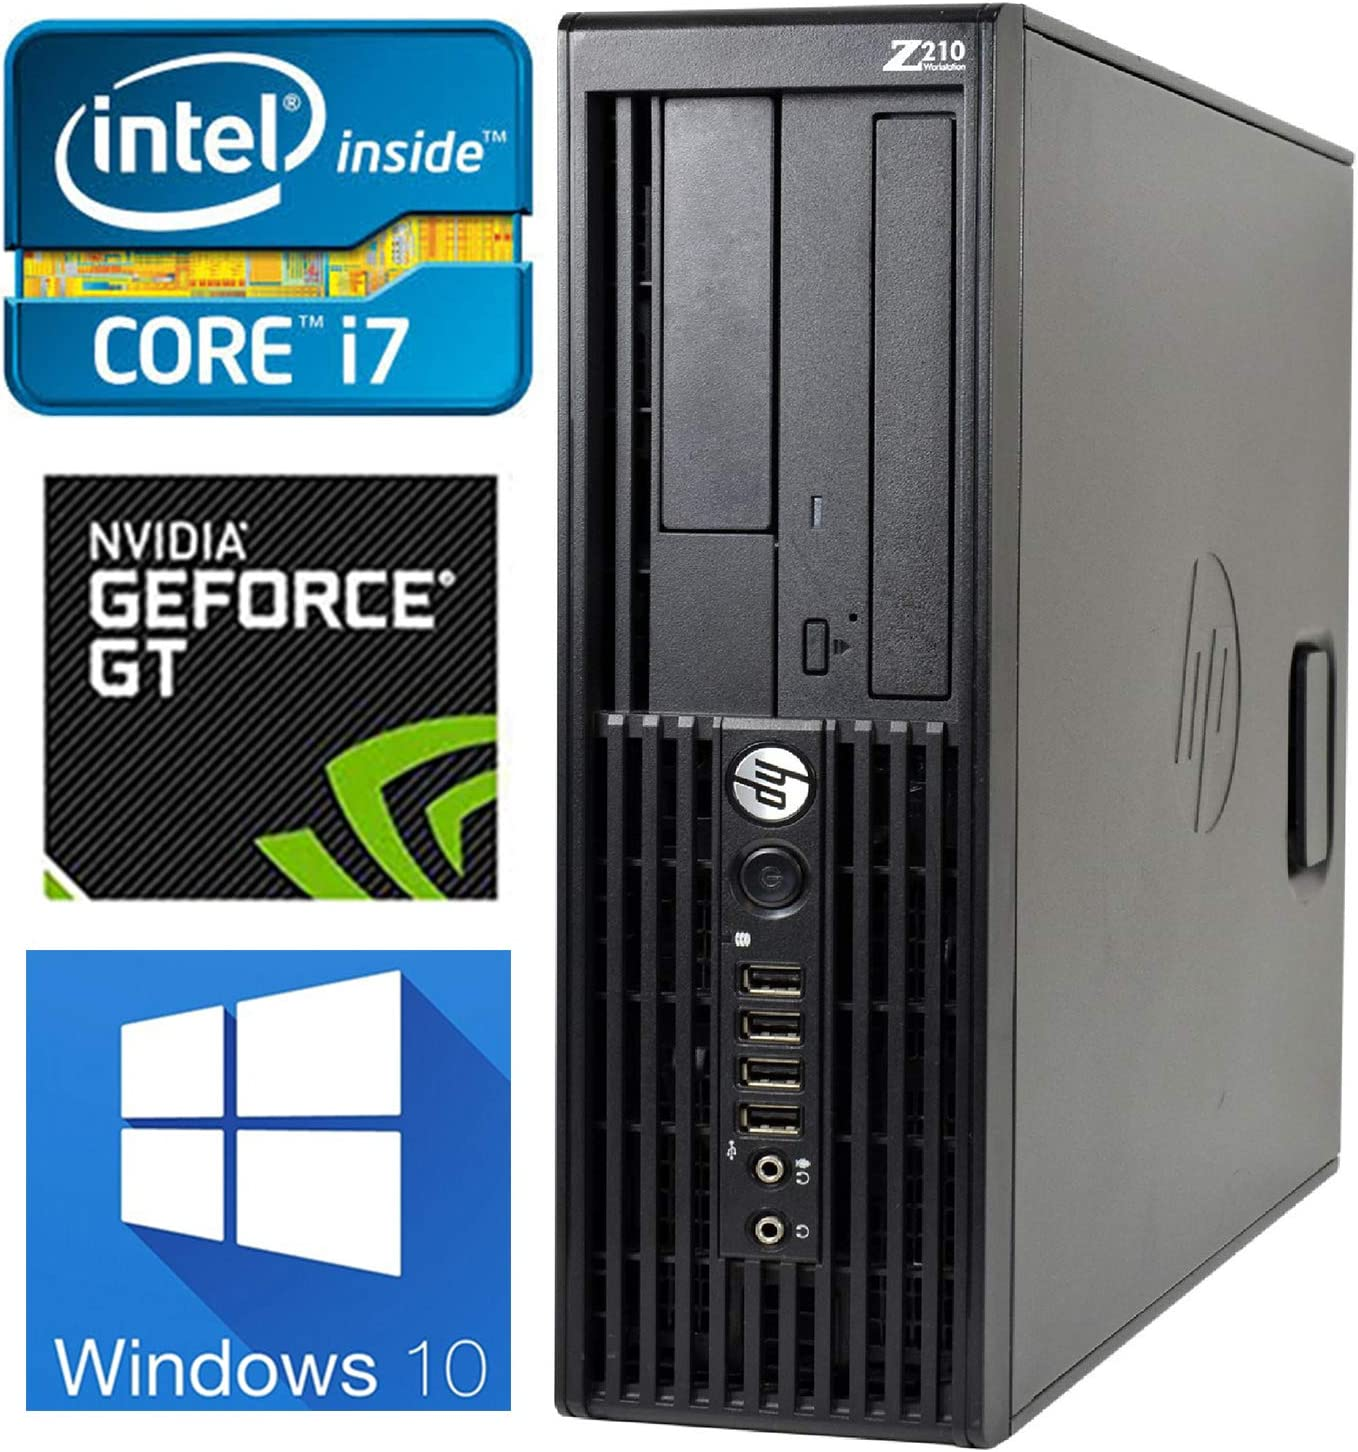 HP i7 Gaming Computer, Quad-Core i7 Upto 3.8GHz, 8GB RAM, 128GB SSD + 1TB HD, 4K Nvidia GeForce GT 730 Graphics Card 4GB(HDMI, DVI, VGA), WiFi & BT, DVD-RW, USB 3.0, Win 10 Pro (Renewed)